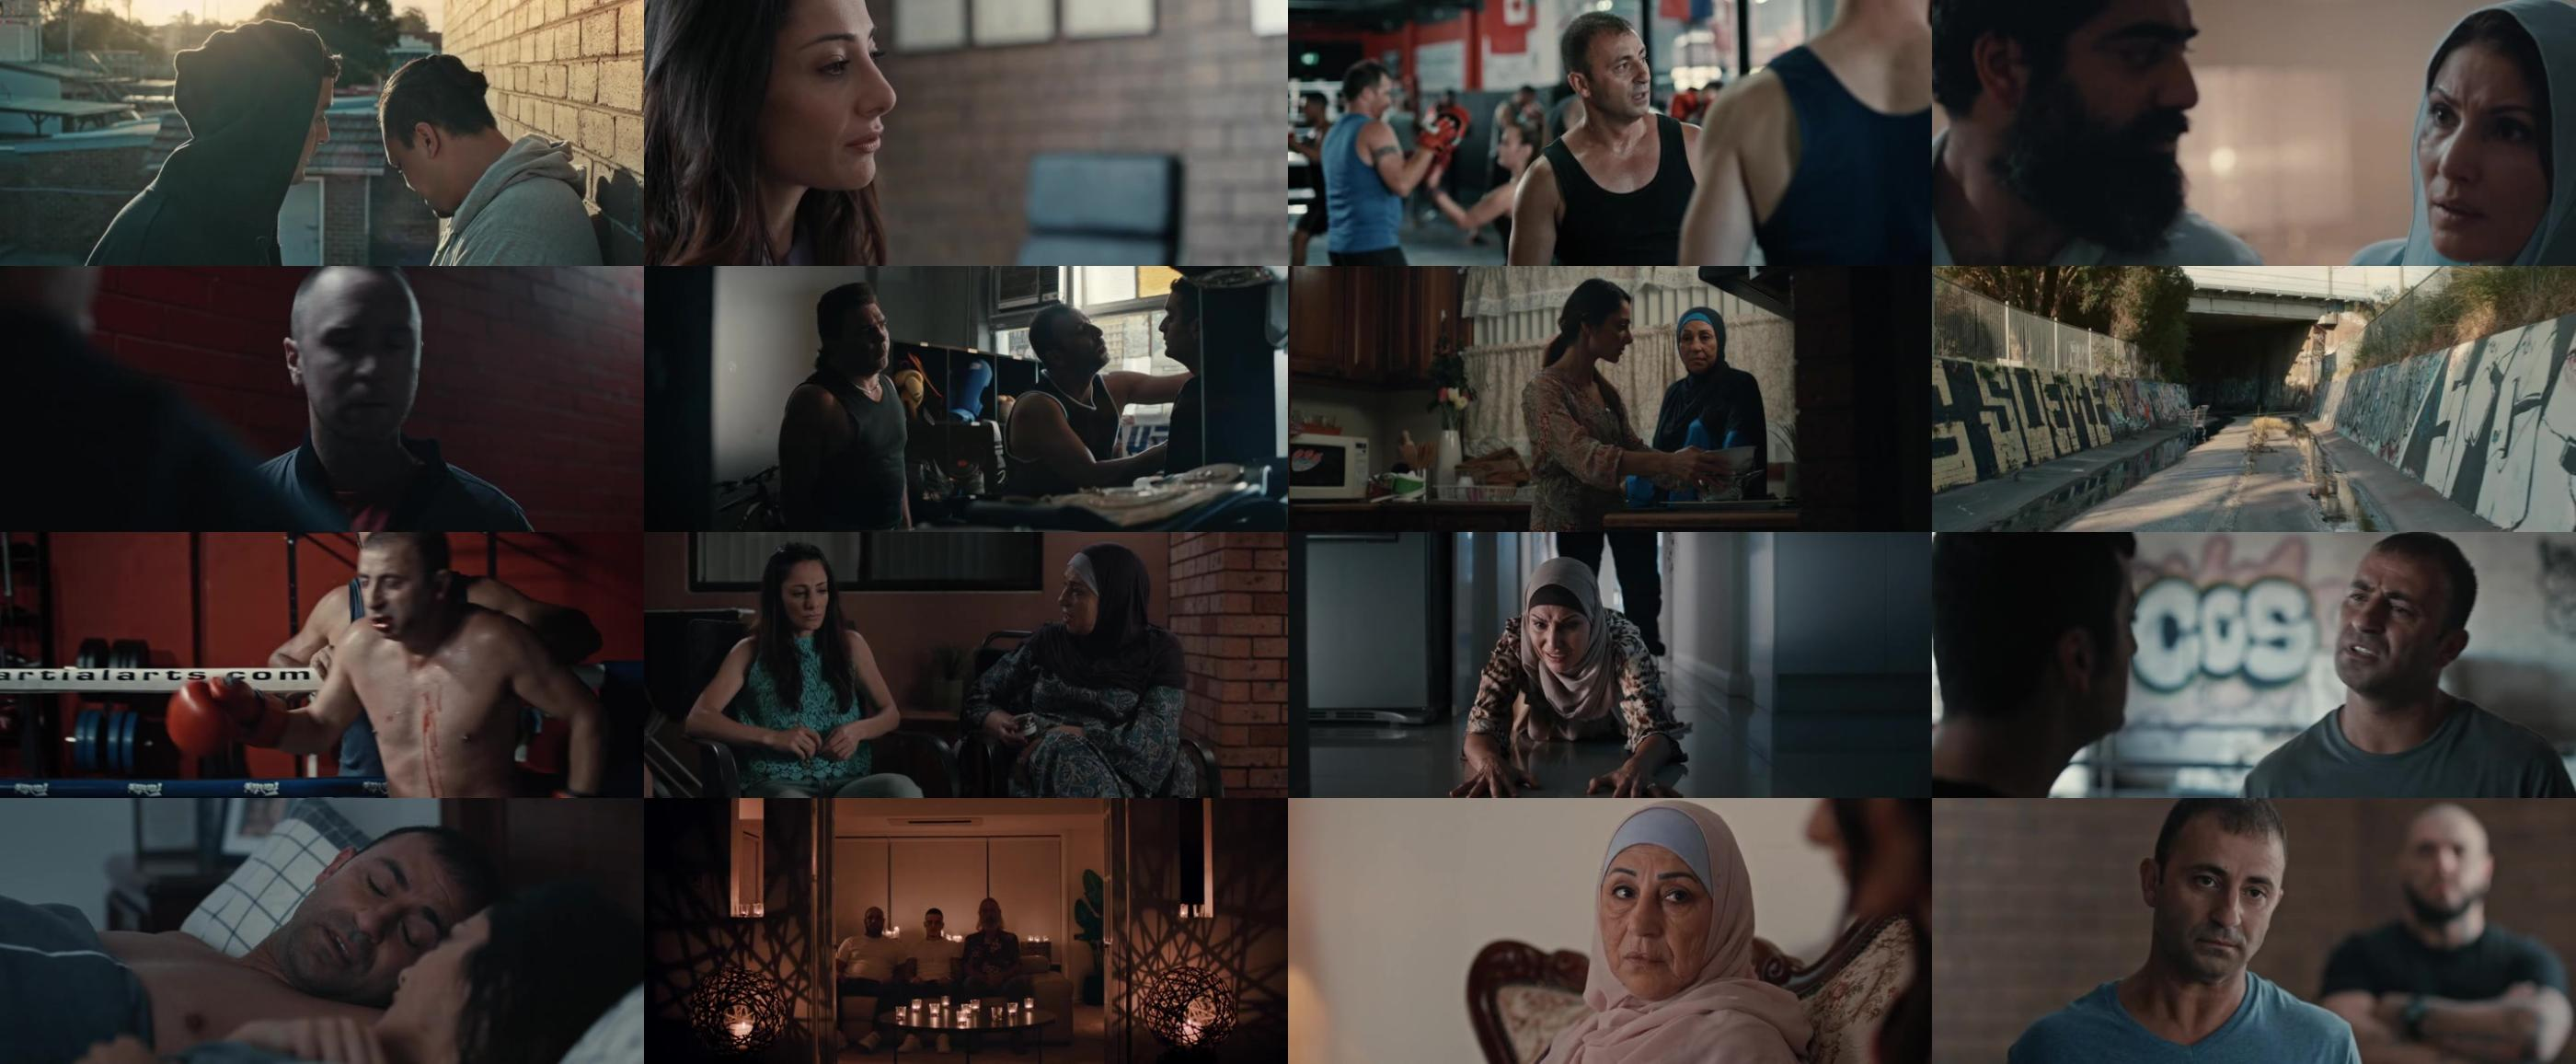 The Combination Redemption 2019 WEB DL XviD MP3 FGT